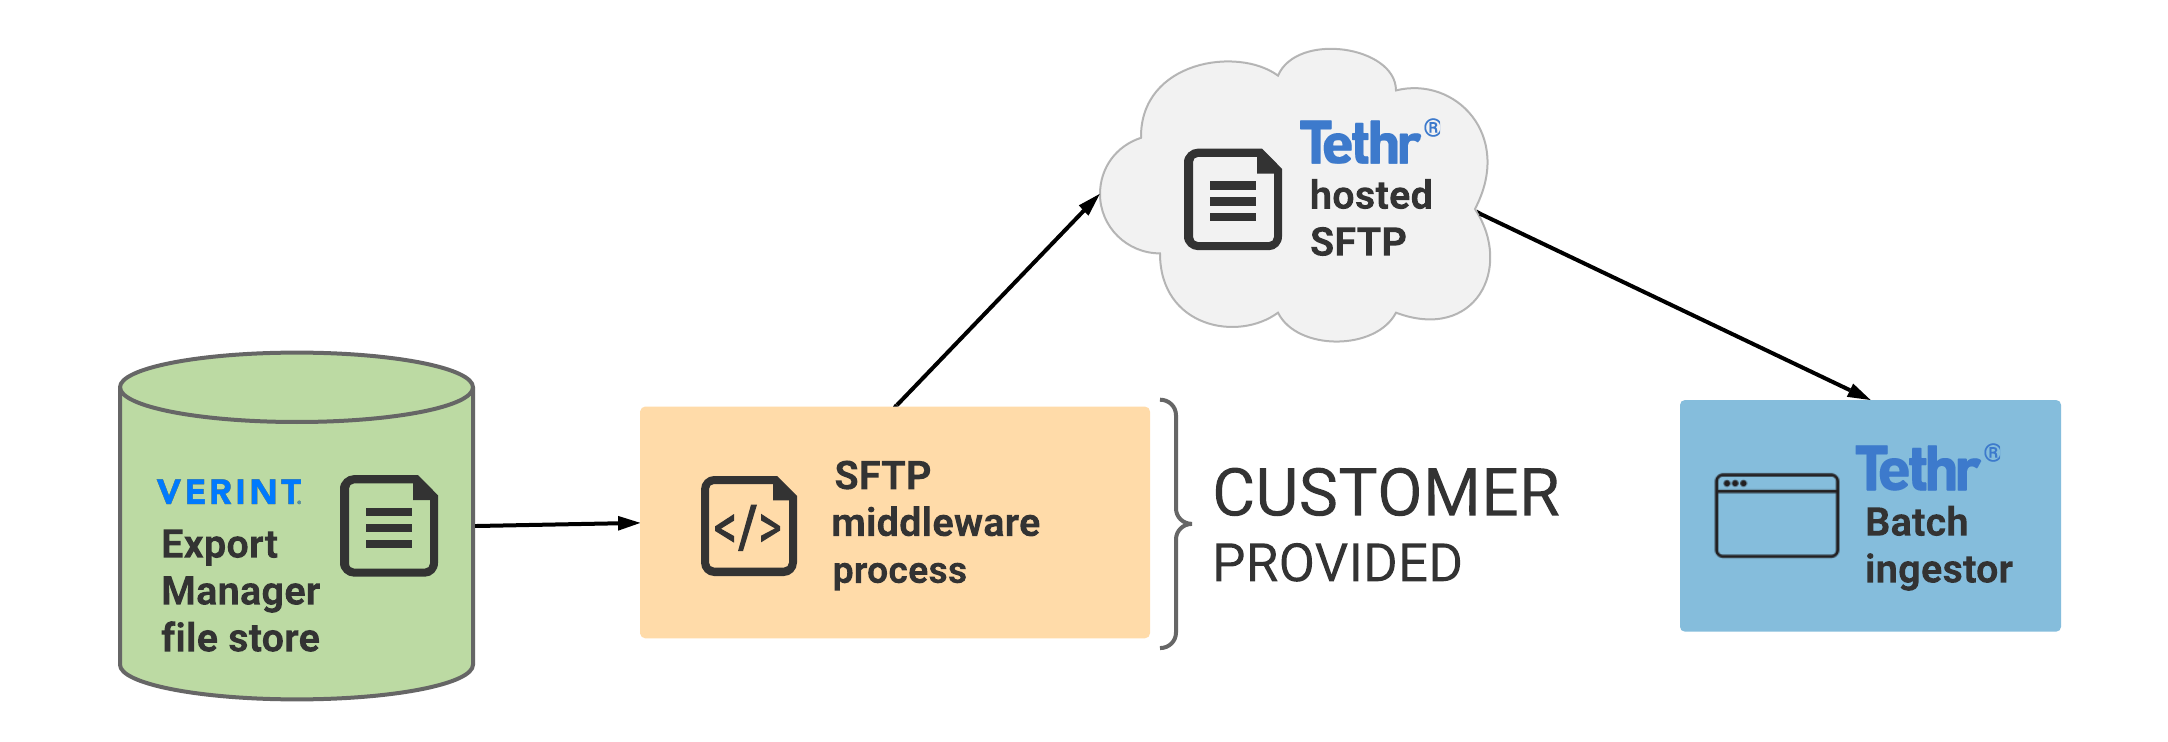 Verint_integration_with_Tethr-Supply_your_own_middleware__configure_transfer_to_Tethr-provided_SFTP_server.png